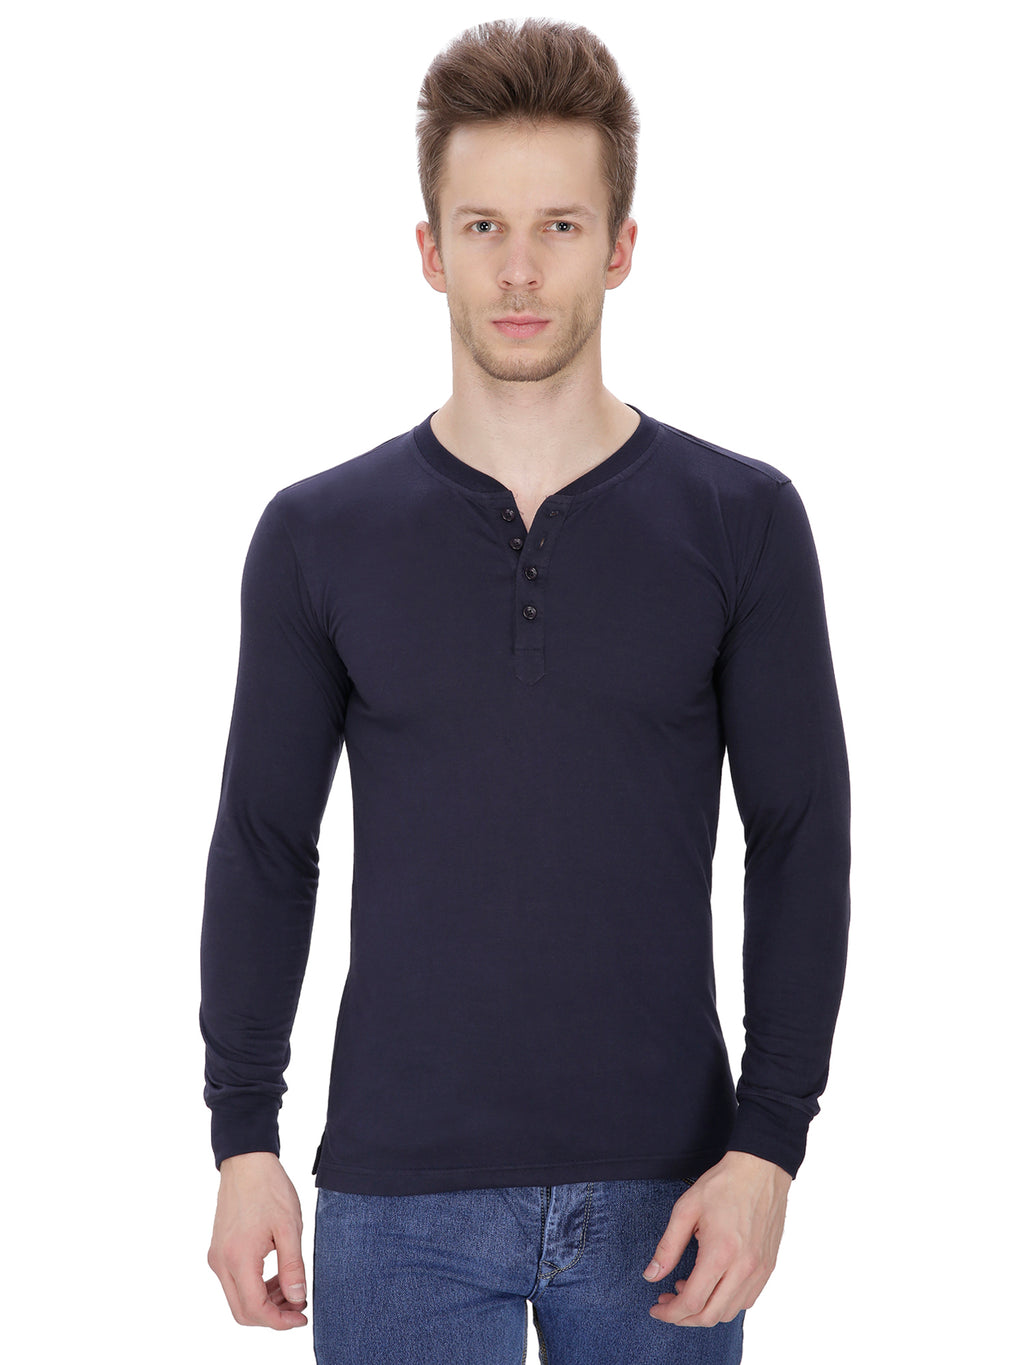 Pintapple Men's Cotton Long Sleeve Henley T-Shirt